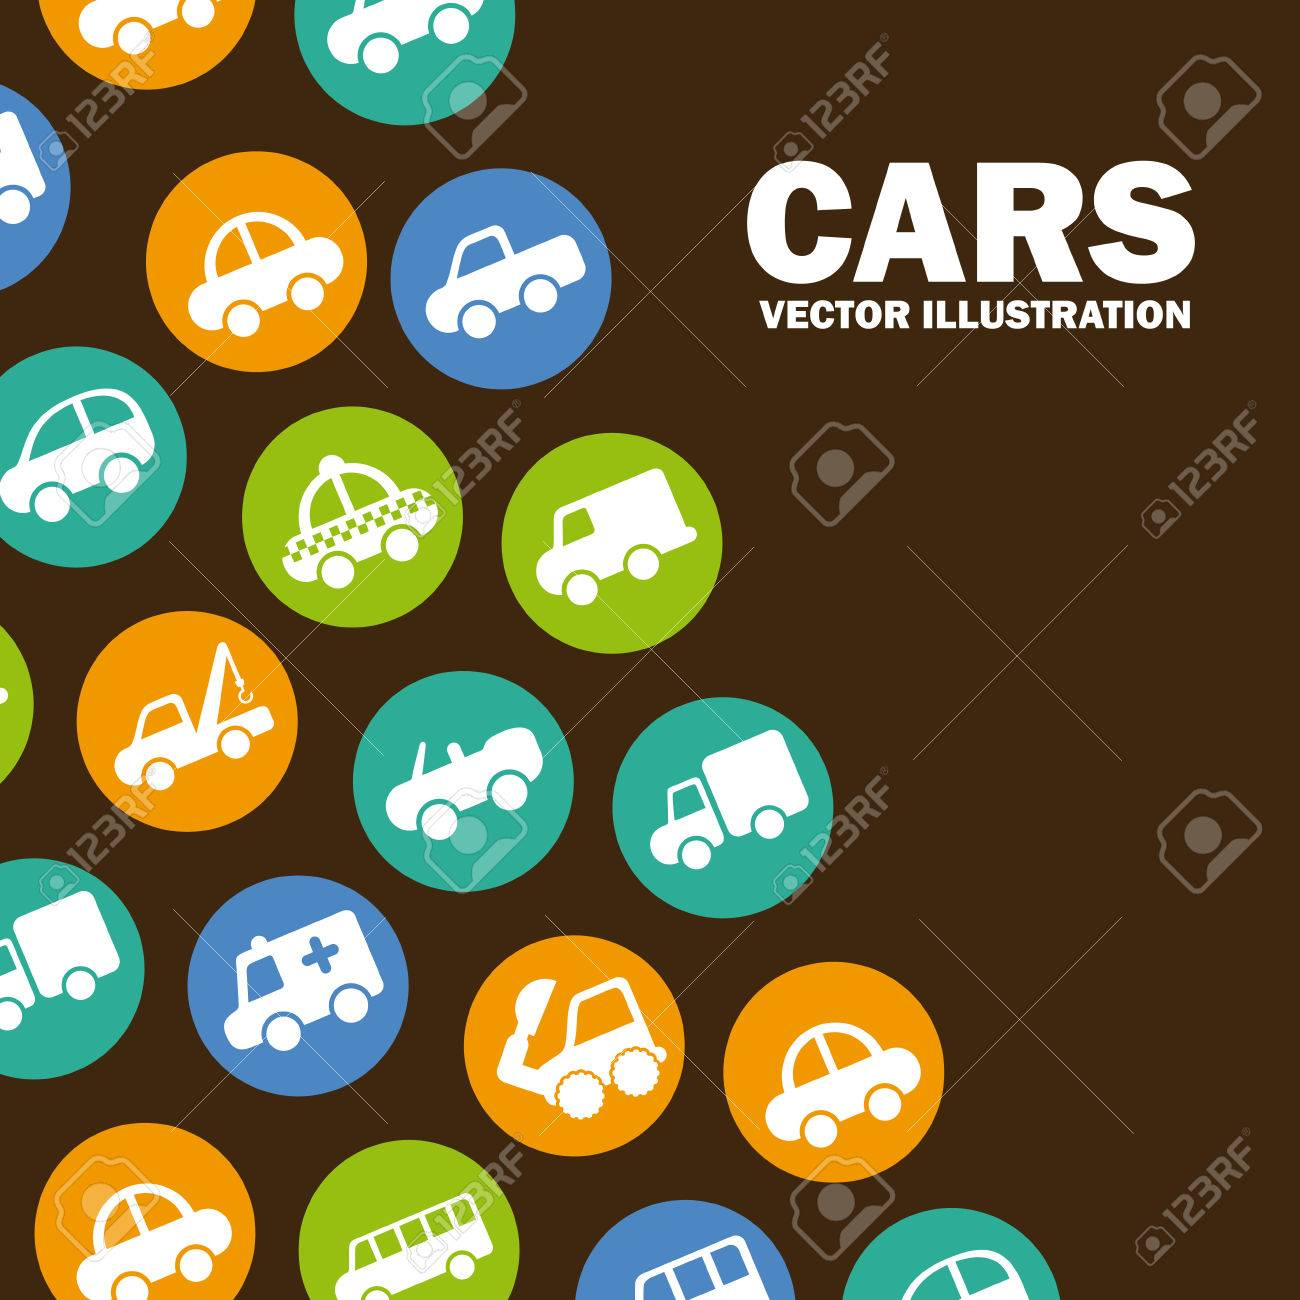 cars design over brown background vector illustration Stock Vector - 22311034